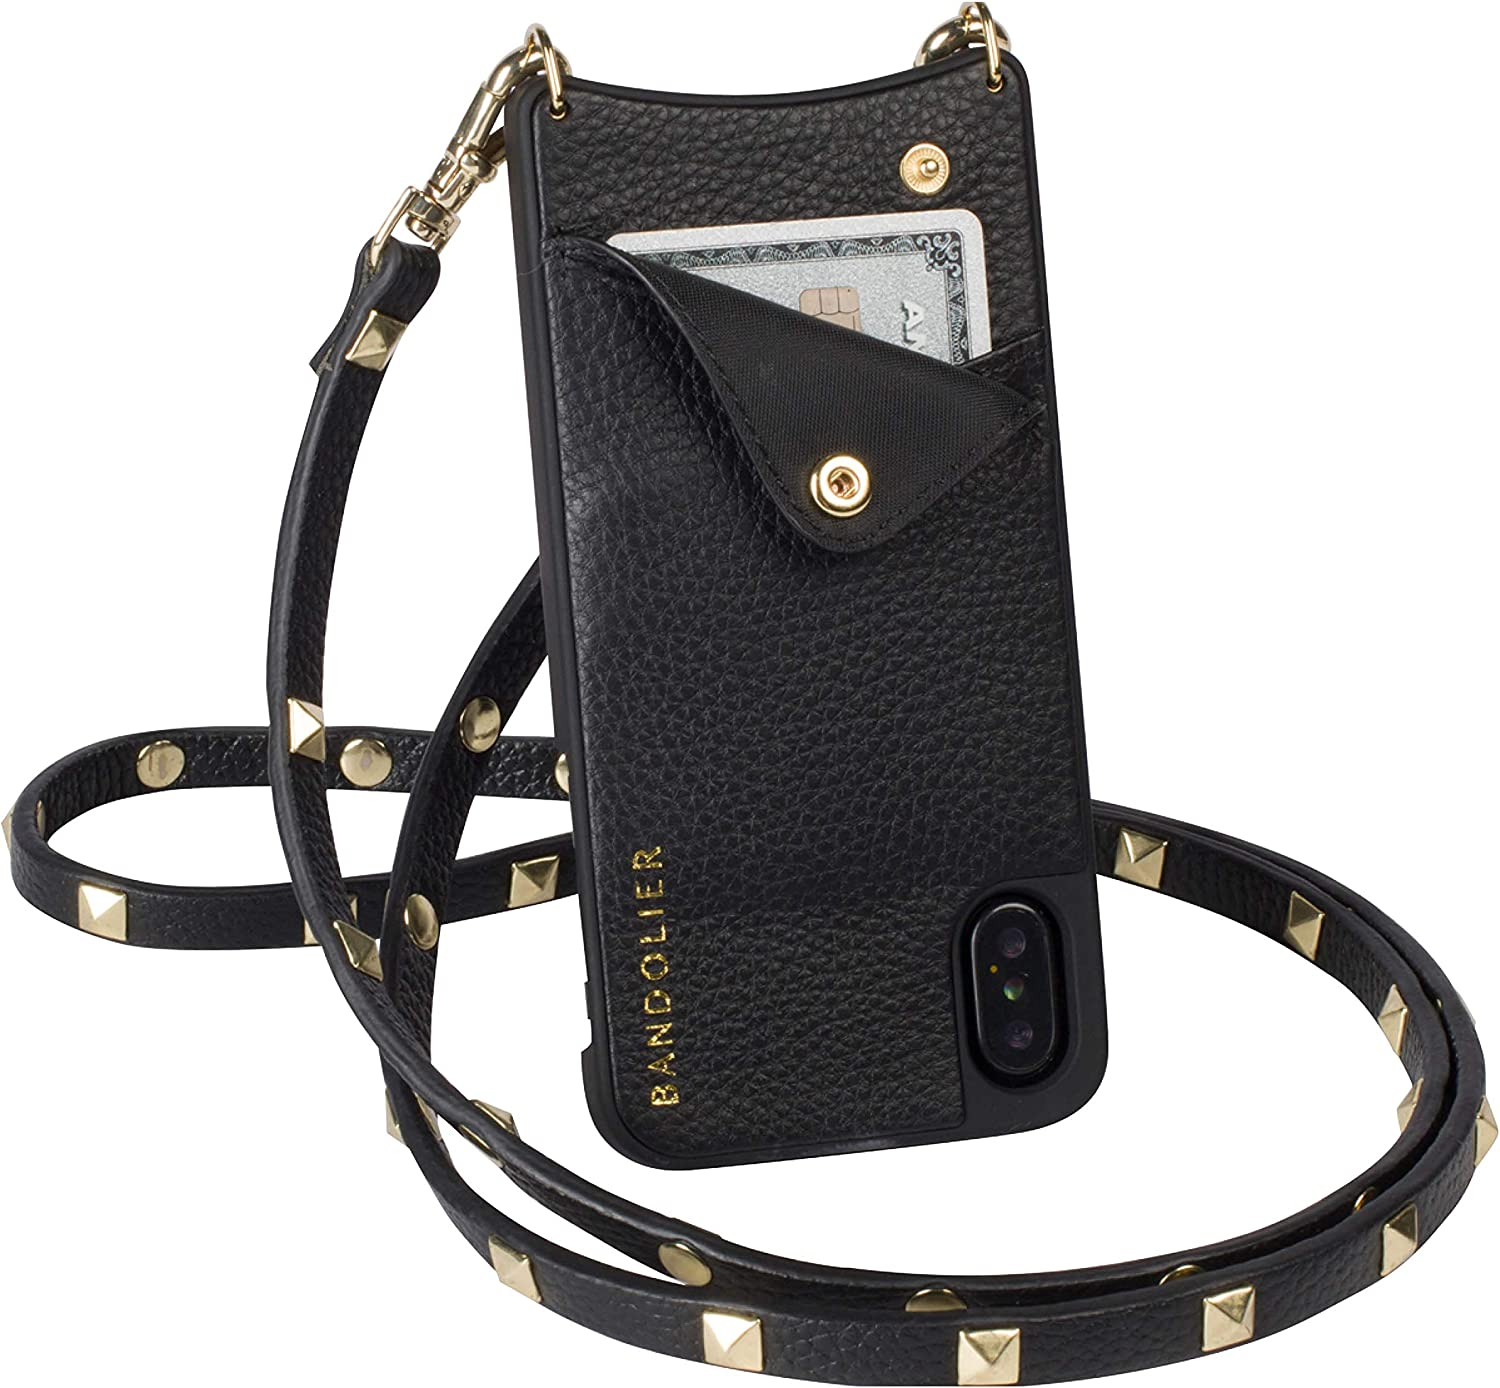 Bandolier Sarah Crossbody Phone Case and Wallet - Black Leather With Gold Detail - Compatible With iPhone XS Max Only